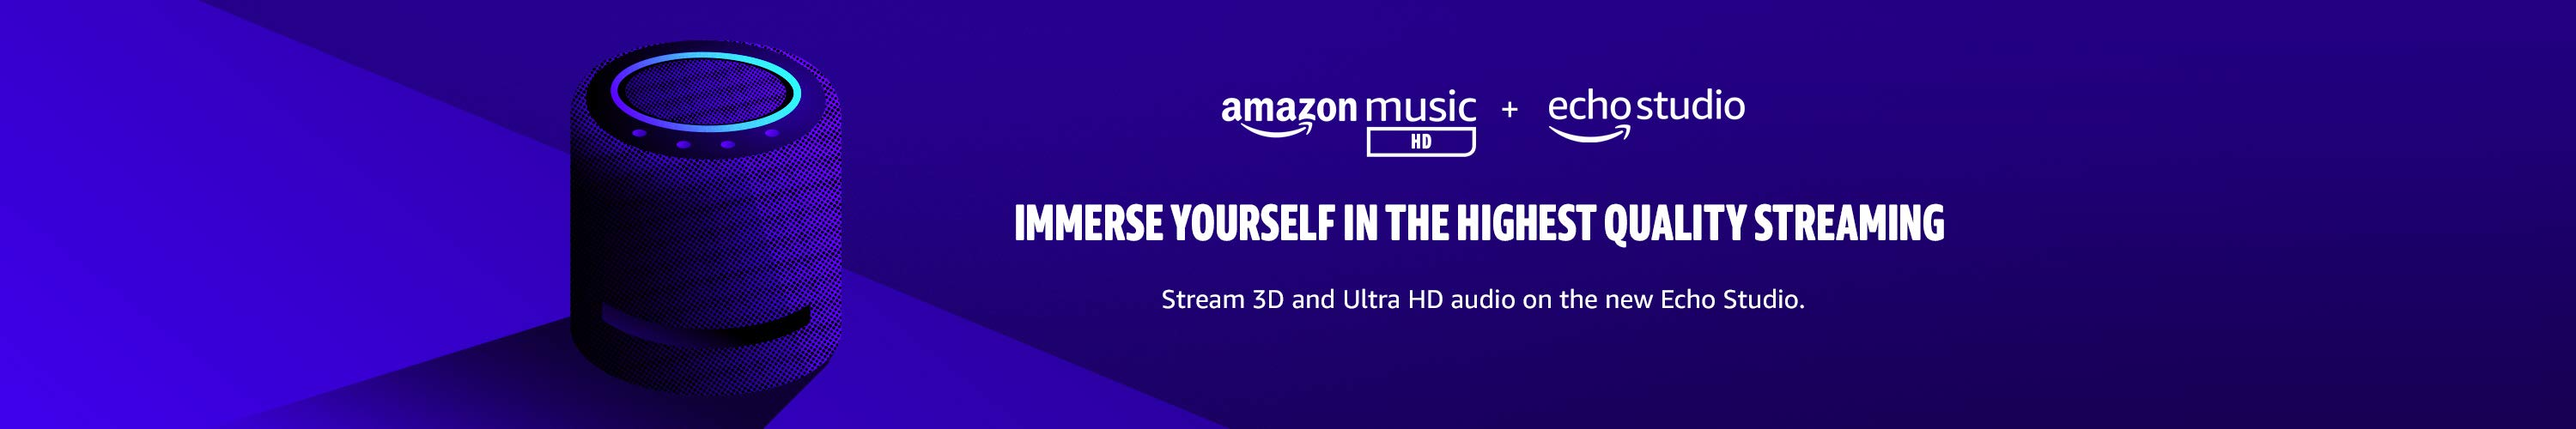 Stream 3D and Ultra HD on the new Echo Studio